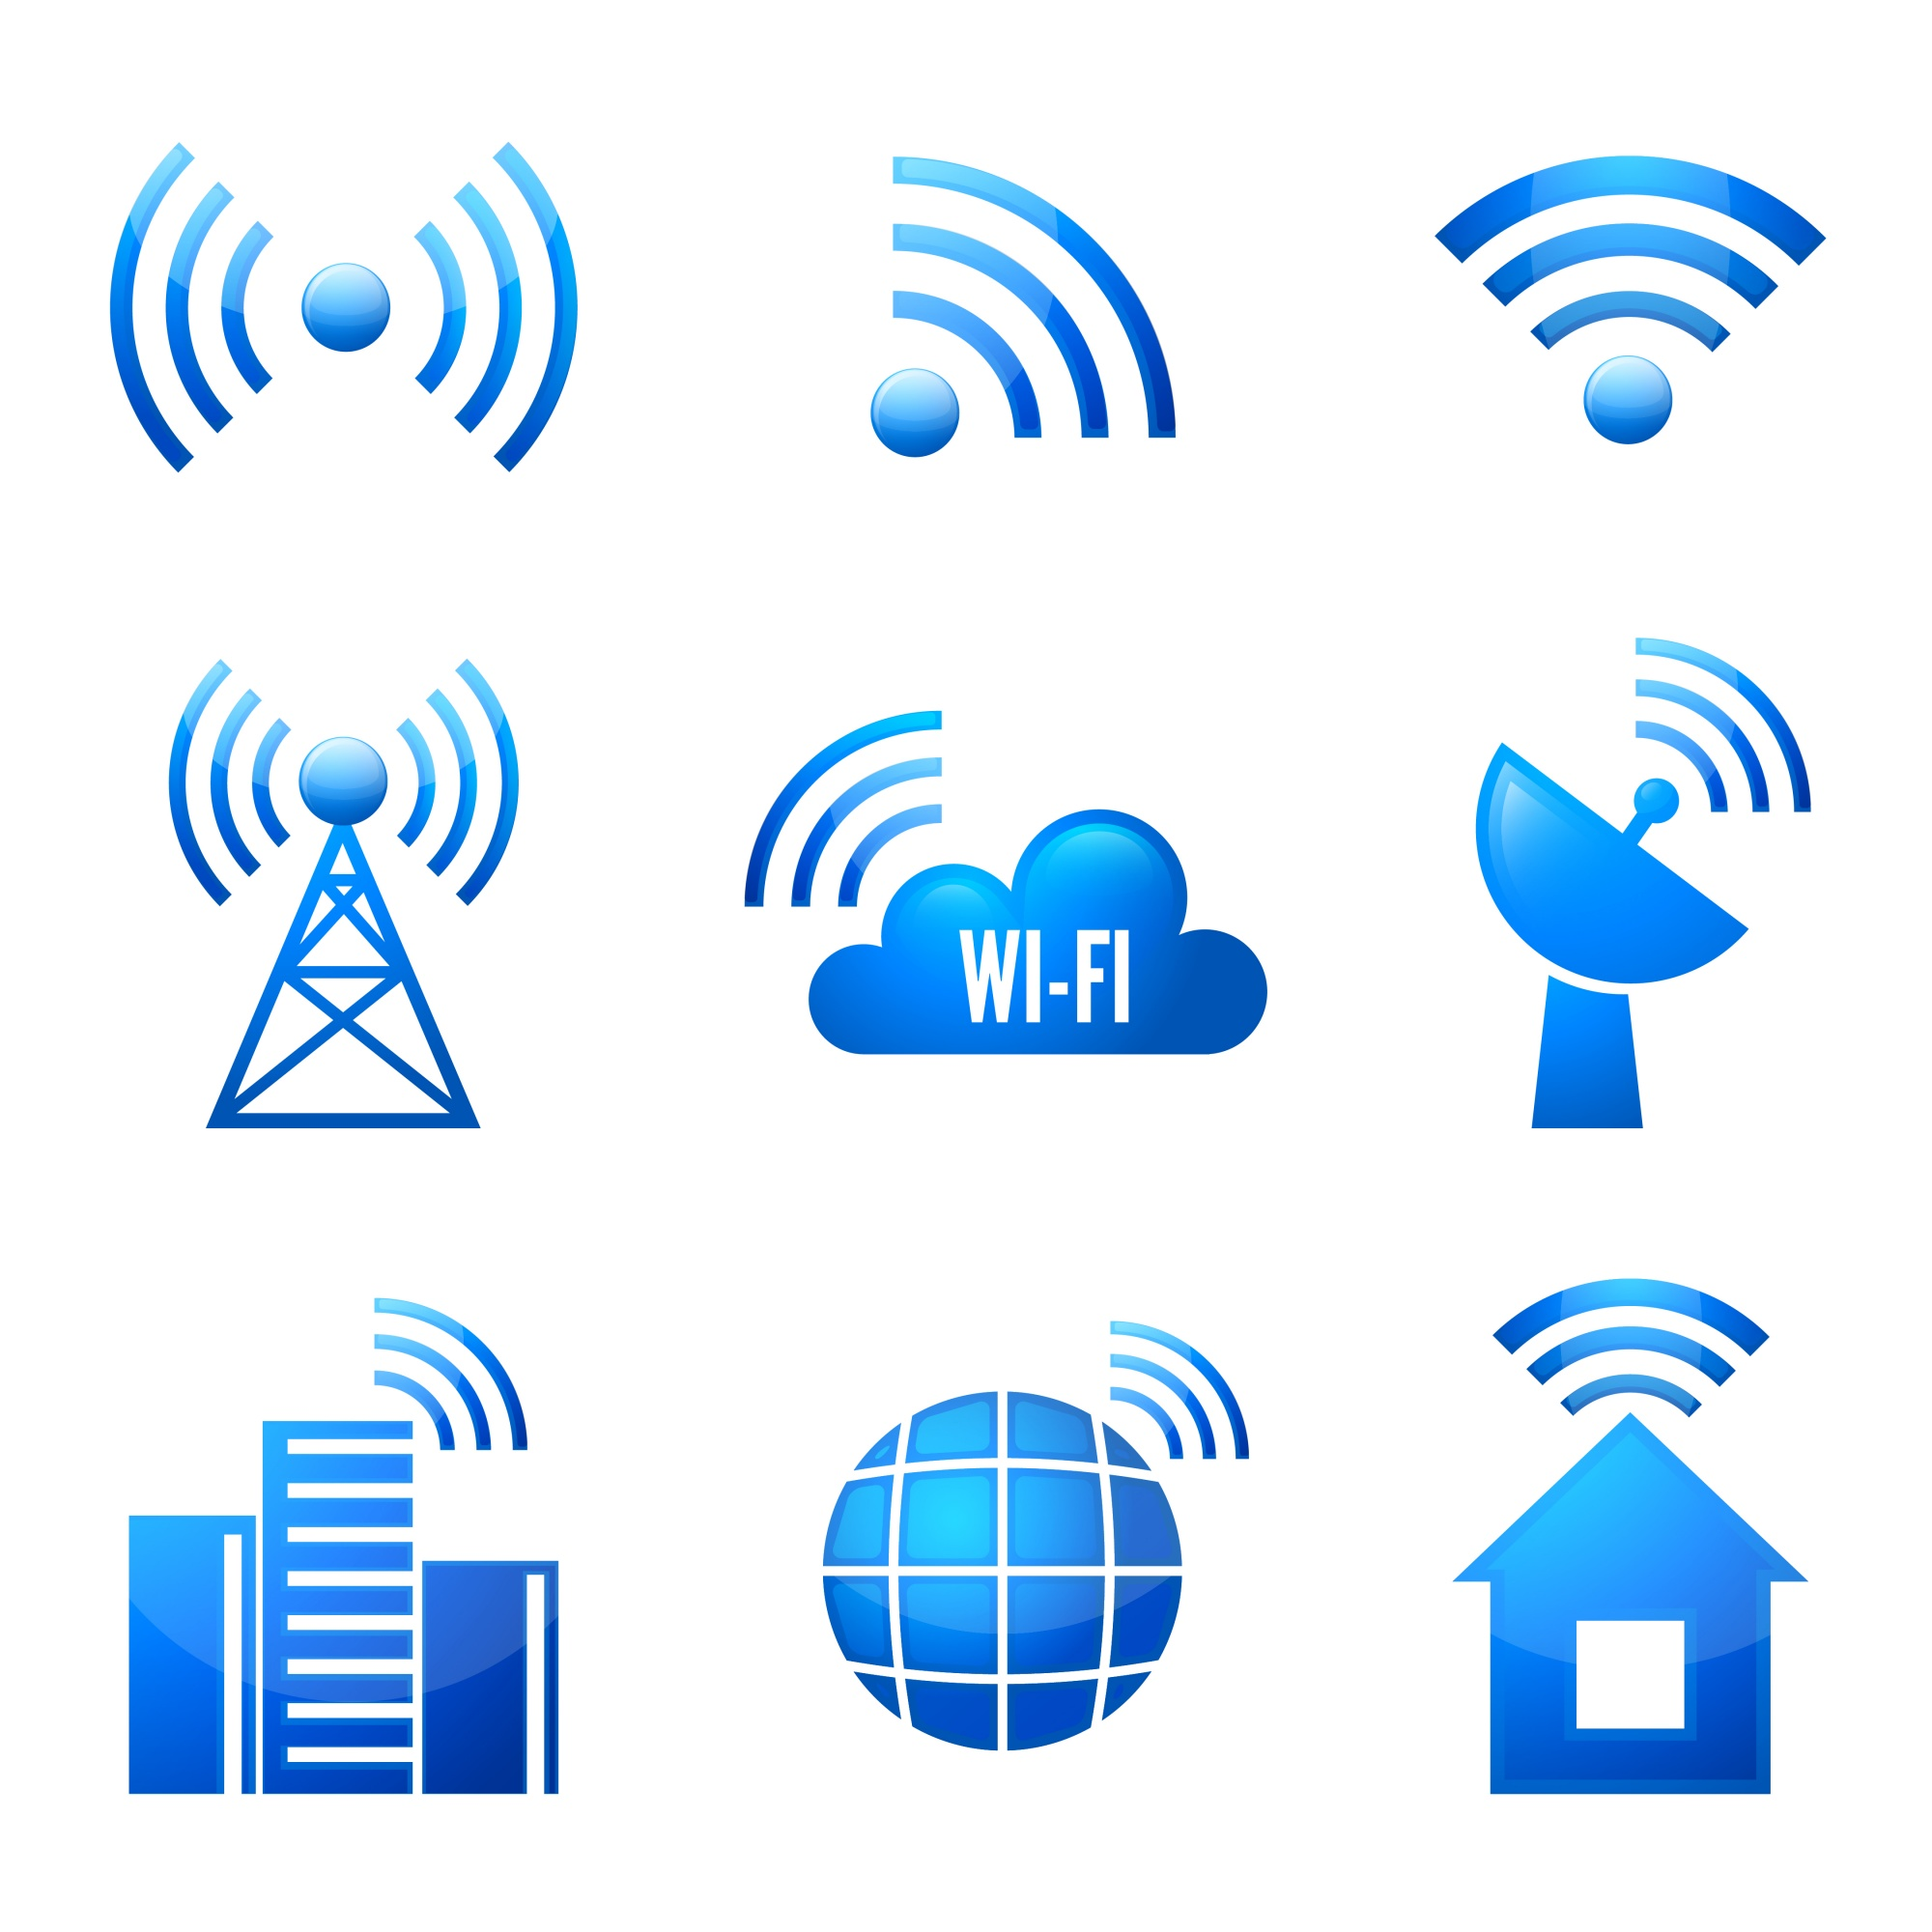 Electronic device wireless internet connection WiFi symbols glossy icons or stickers set isolated vector illustration